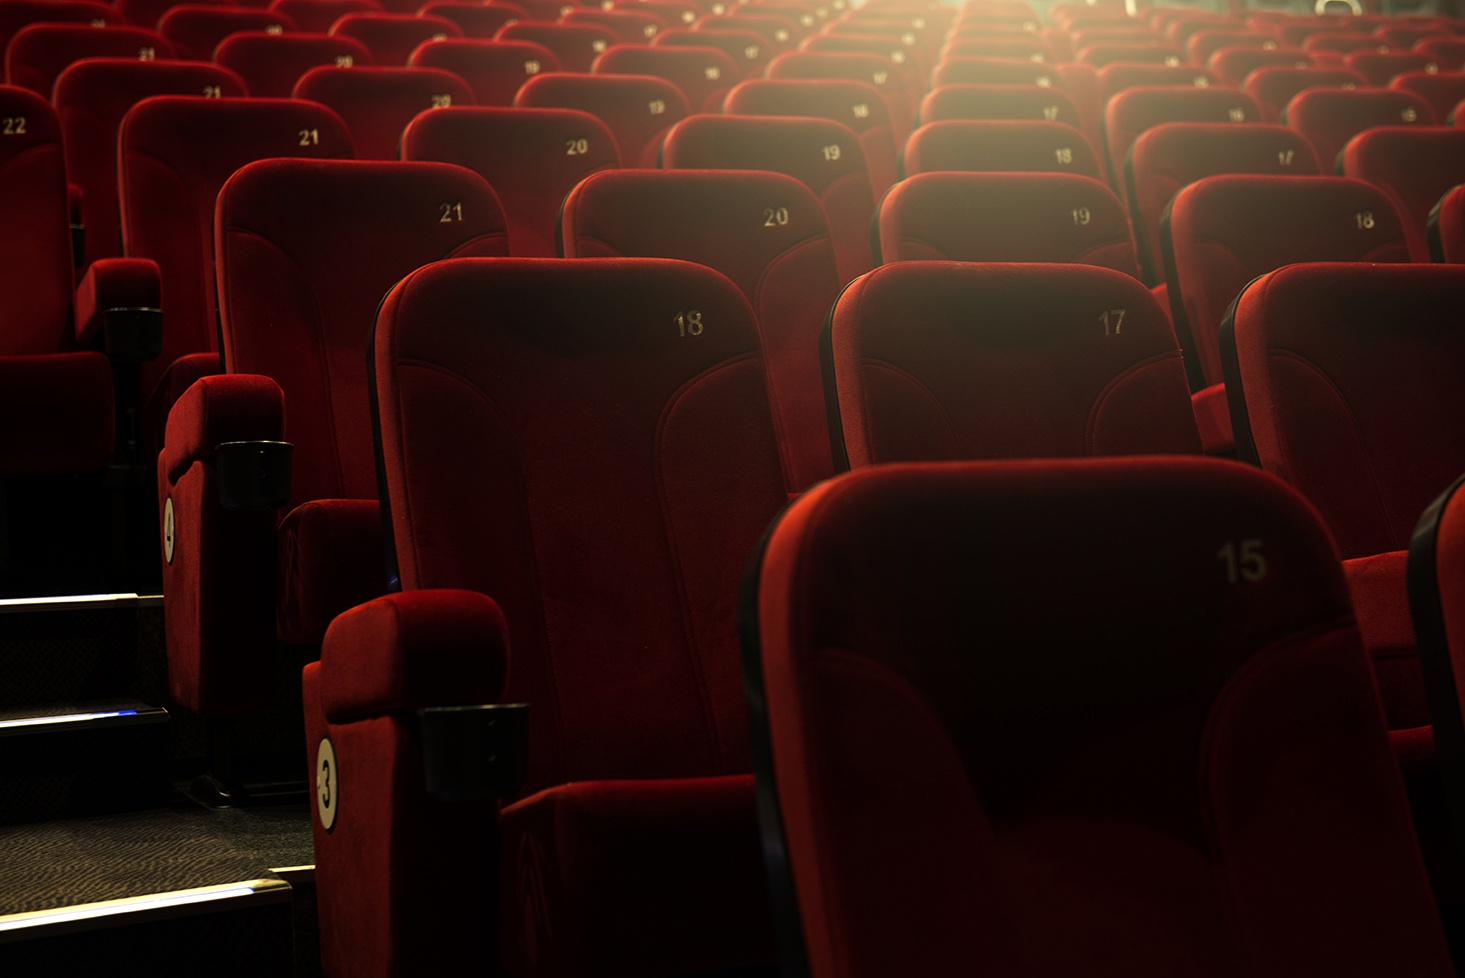 Products_for_movie_theatres.jpeg & What are the best lighting retrofit opportunities for a movie theater?